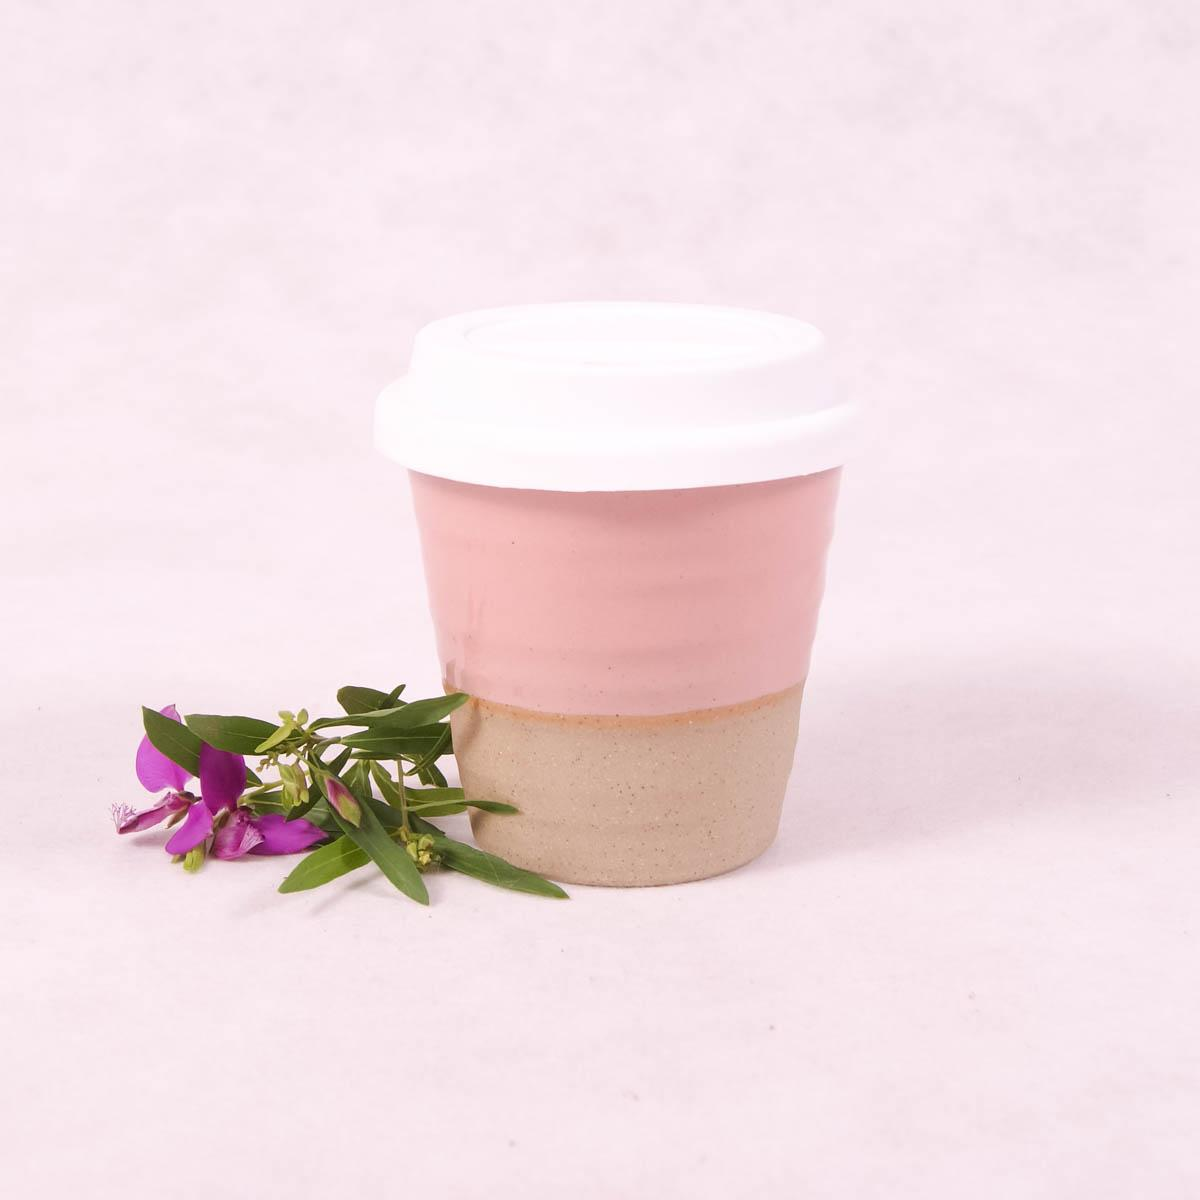 Winter Pastels Ceramic Carousel Cup Small - Peach - Travel Cup - Throw Some Seeds - Australian gardening gifts and eco products online!